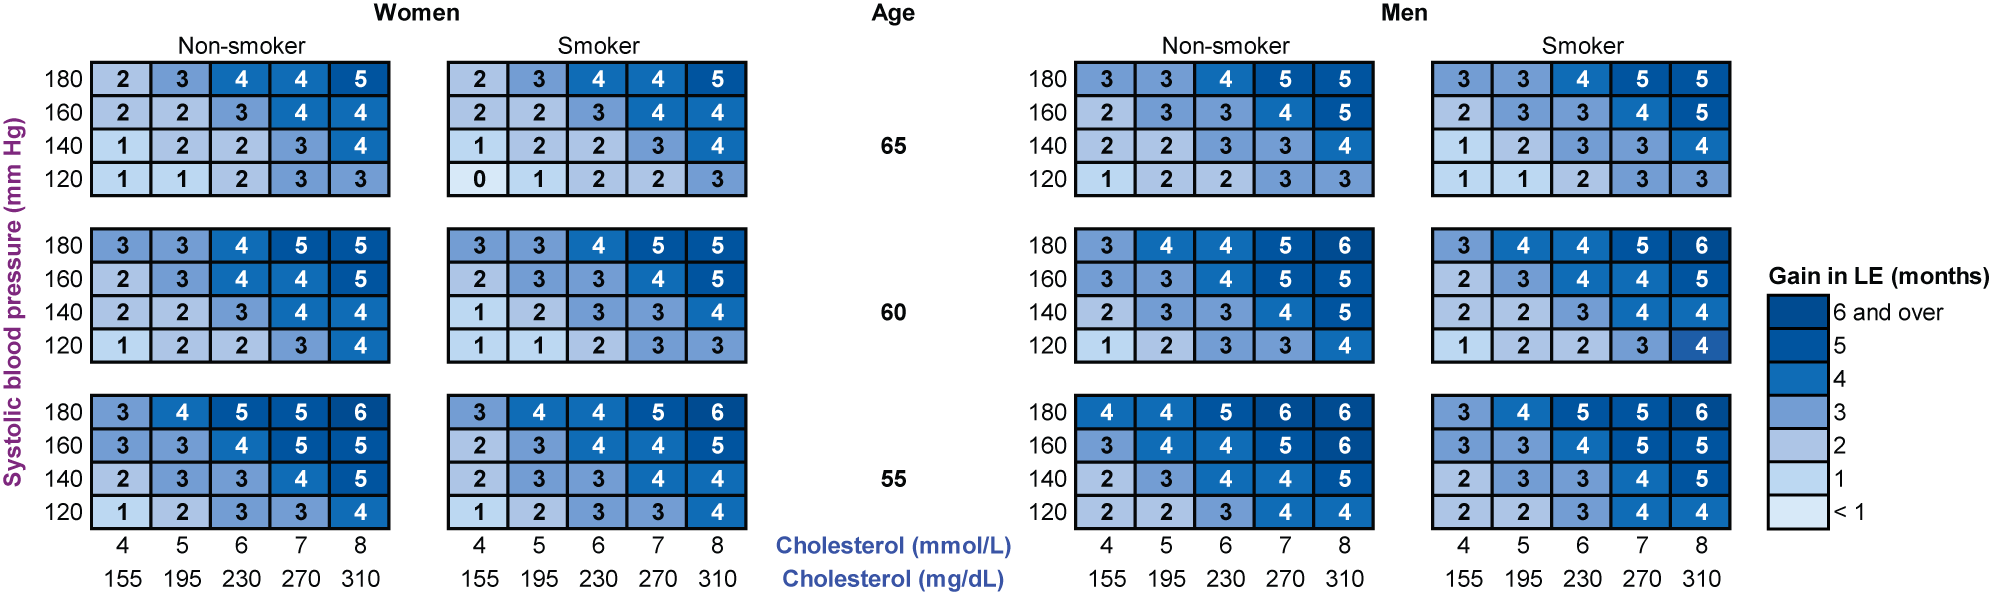 The gain in life expectancy (in months) with statin therapy, calculated with the RISC model.